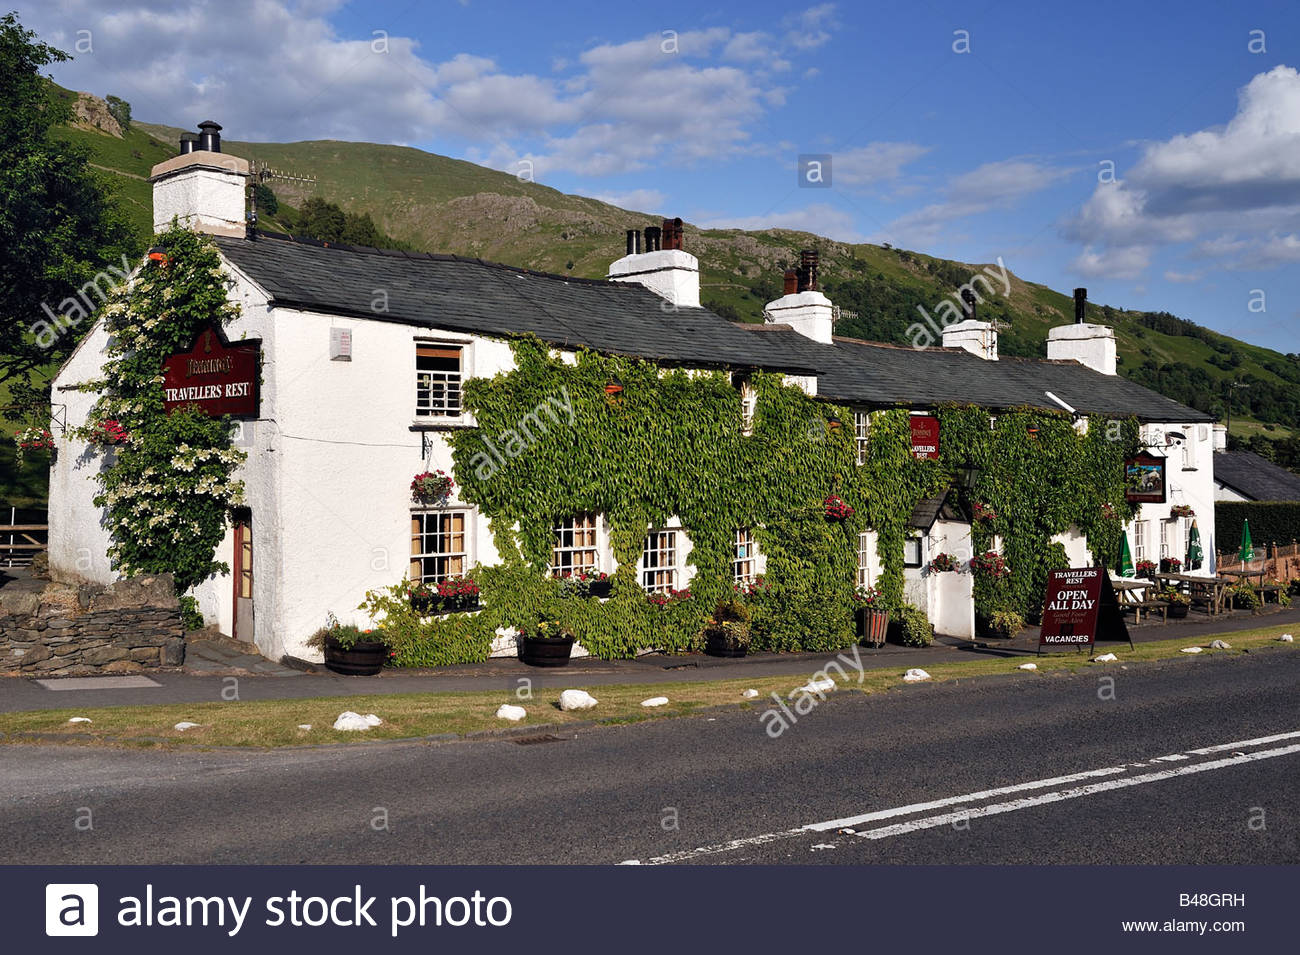 A typical English Lakeland pub close to Grasmere - Stock Image